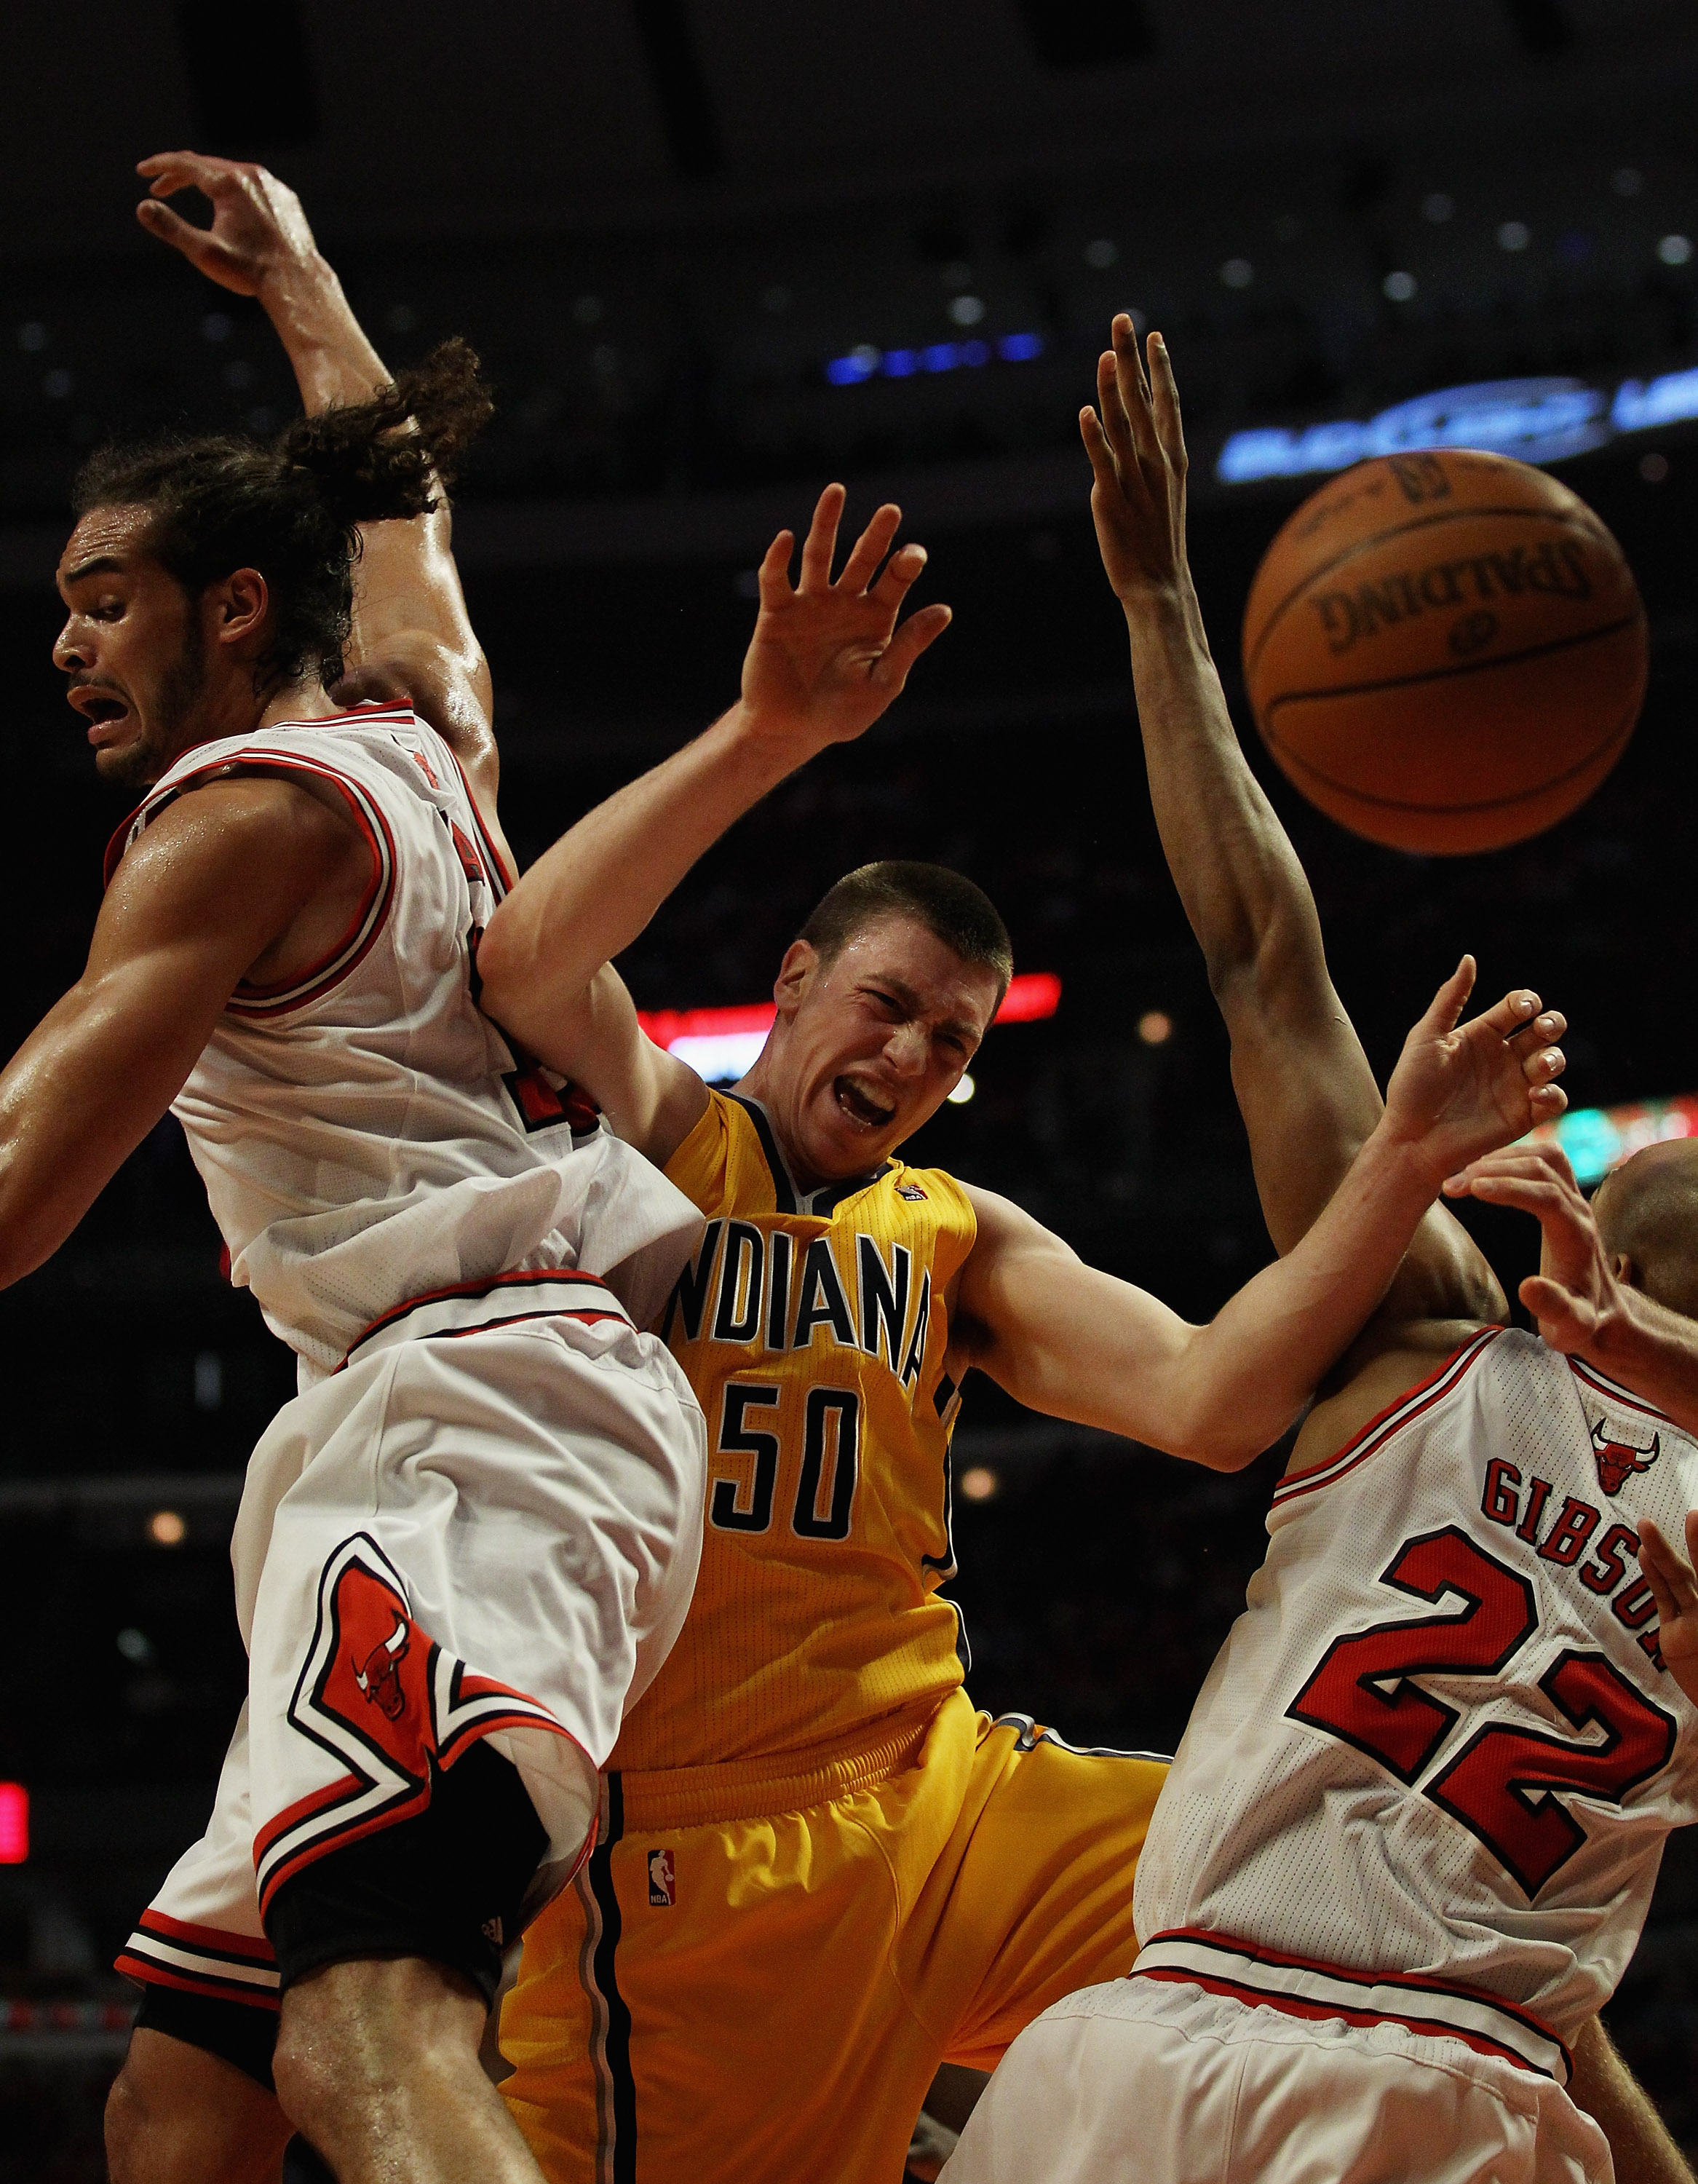 CHICAGO, IL - APRIL 26: Tyler Hansbrough #50 of the Indiana Pacers looses control of the ball under pressure from Joakim Noah #13 and Taj Gibson #22 of the Chicago Bulls in Game Five of the Eastern Conference Quarterfinals in the 2011 NBA Playoffs at the